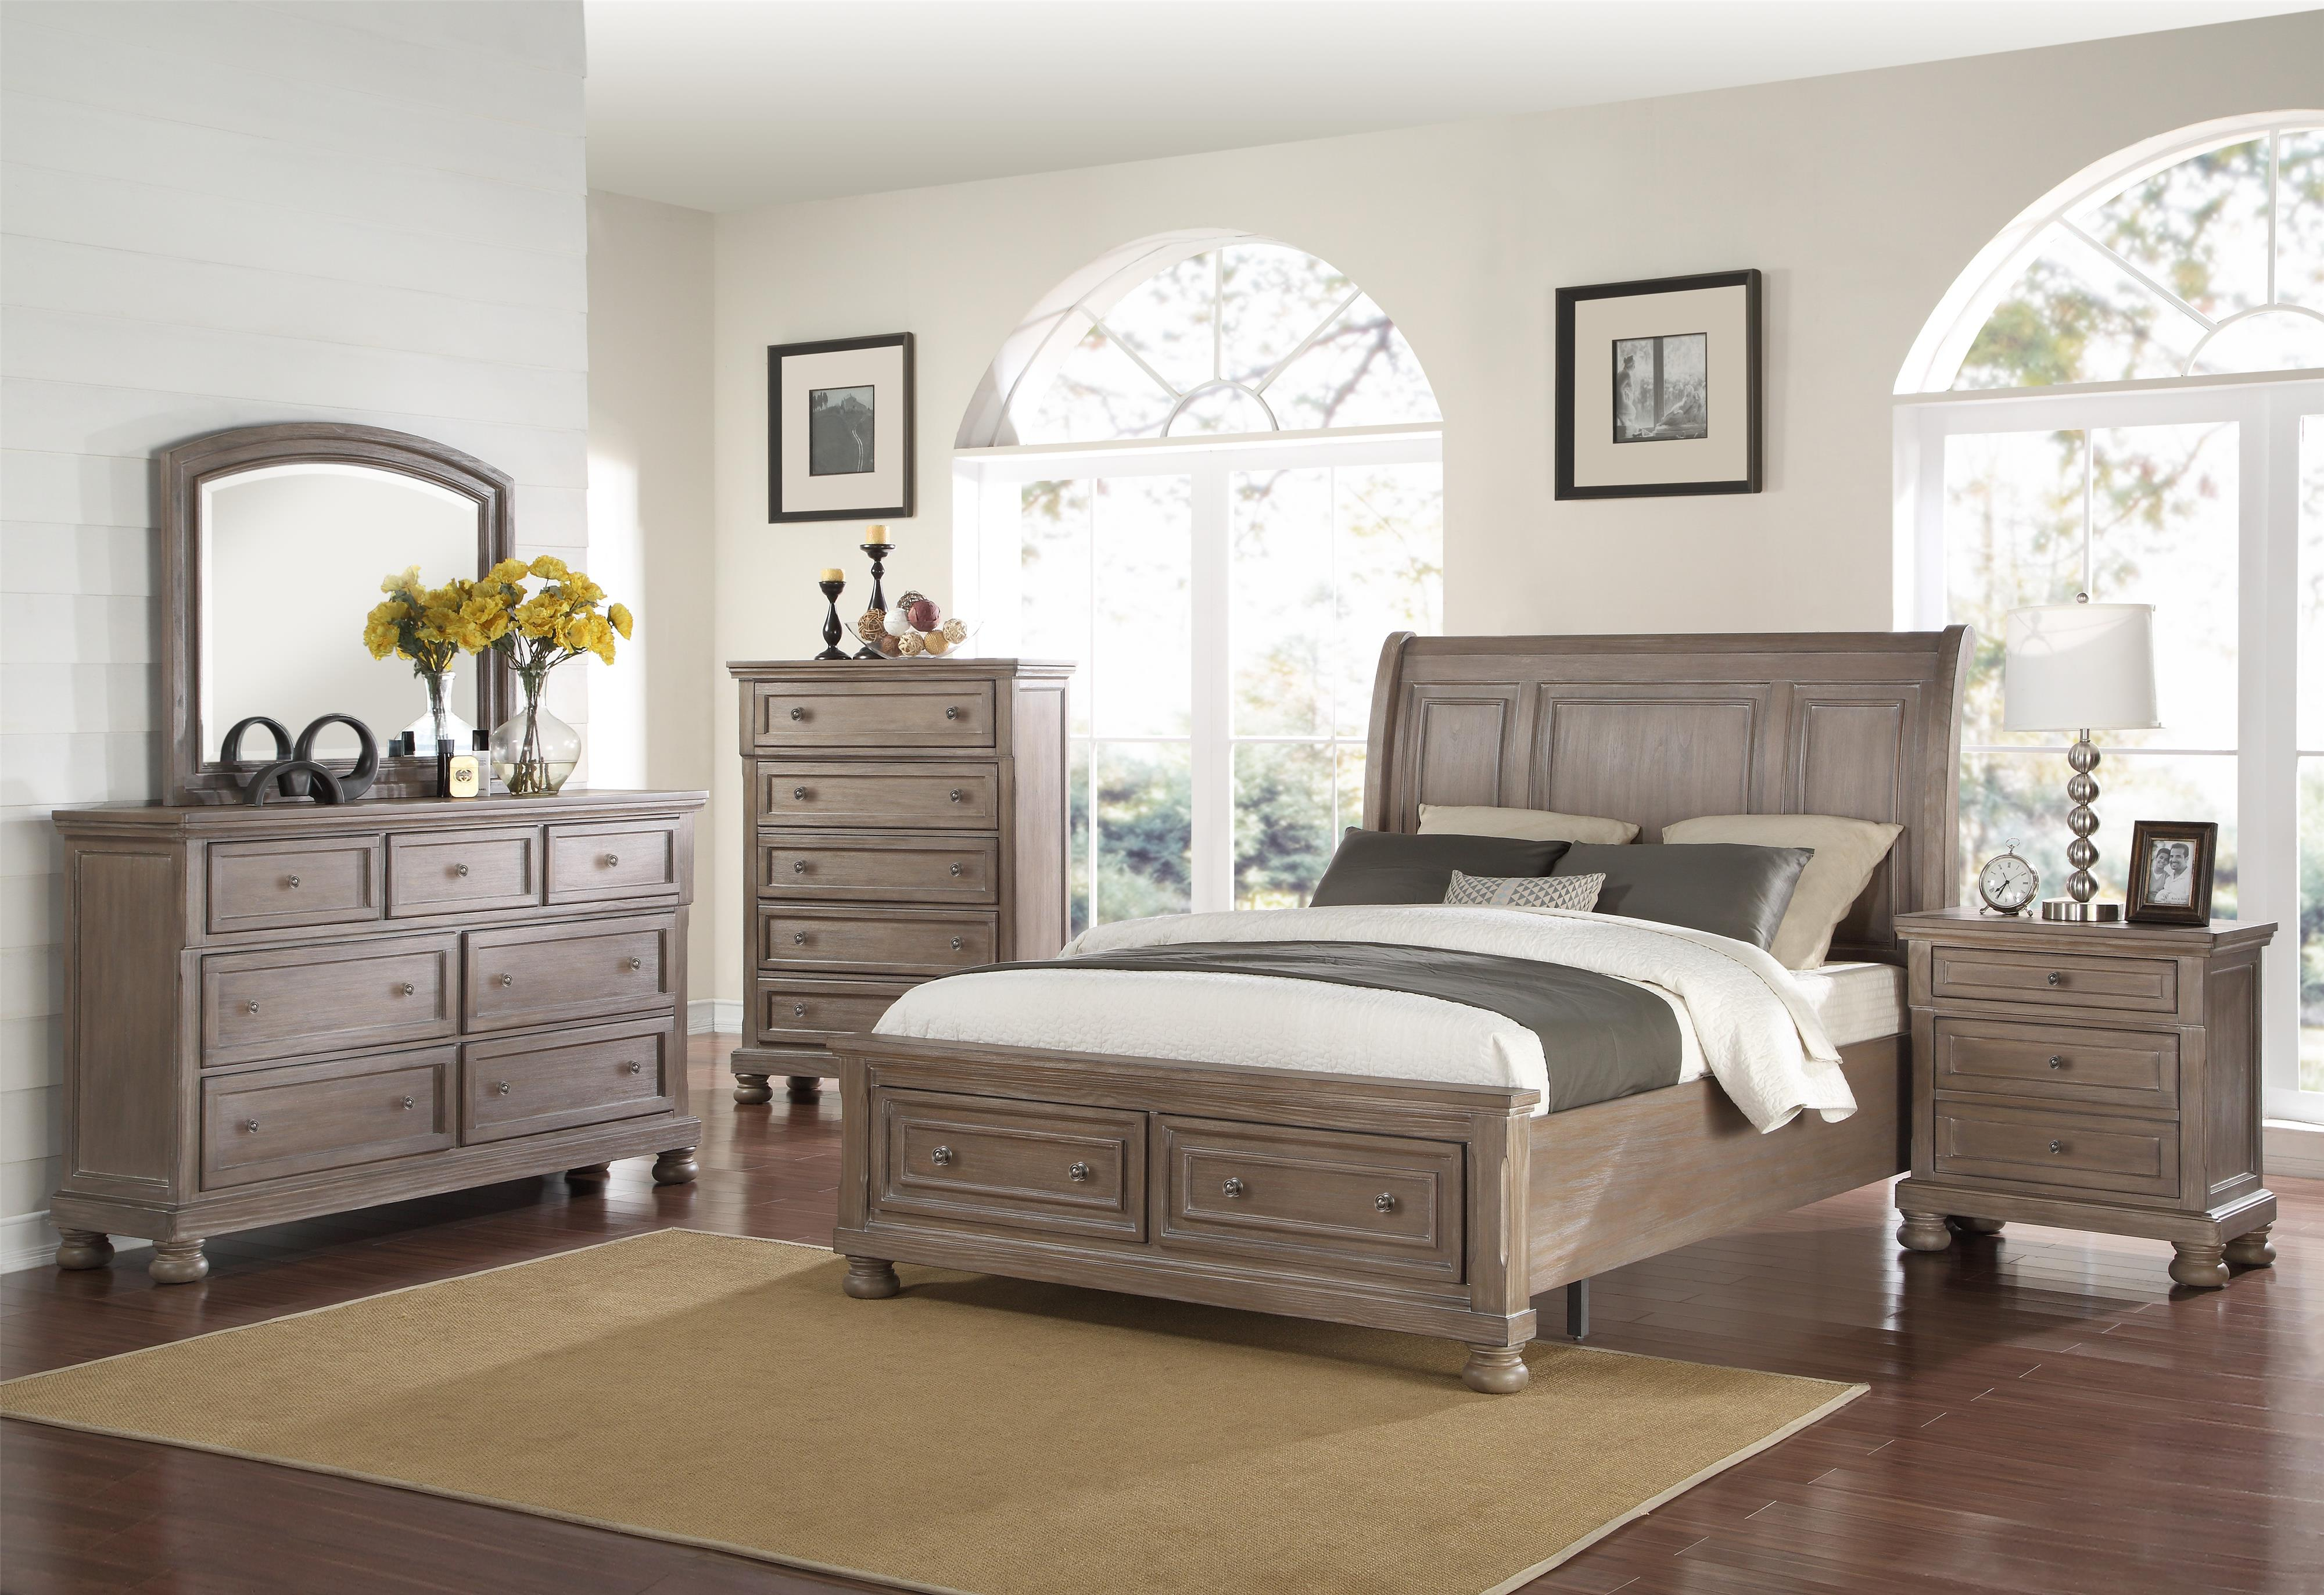 Master Allegra by New Classic new classic furniture